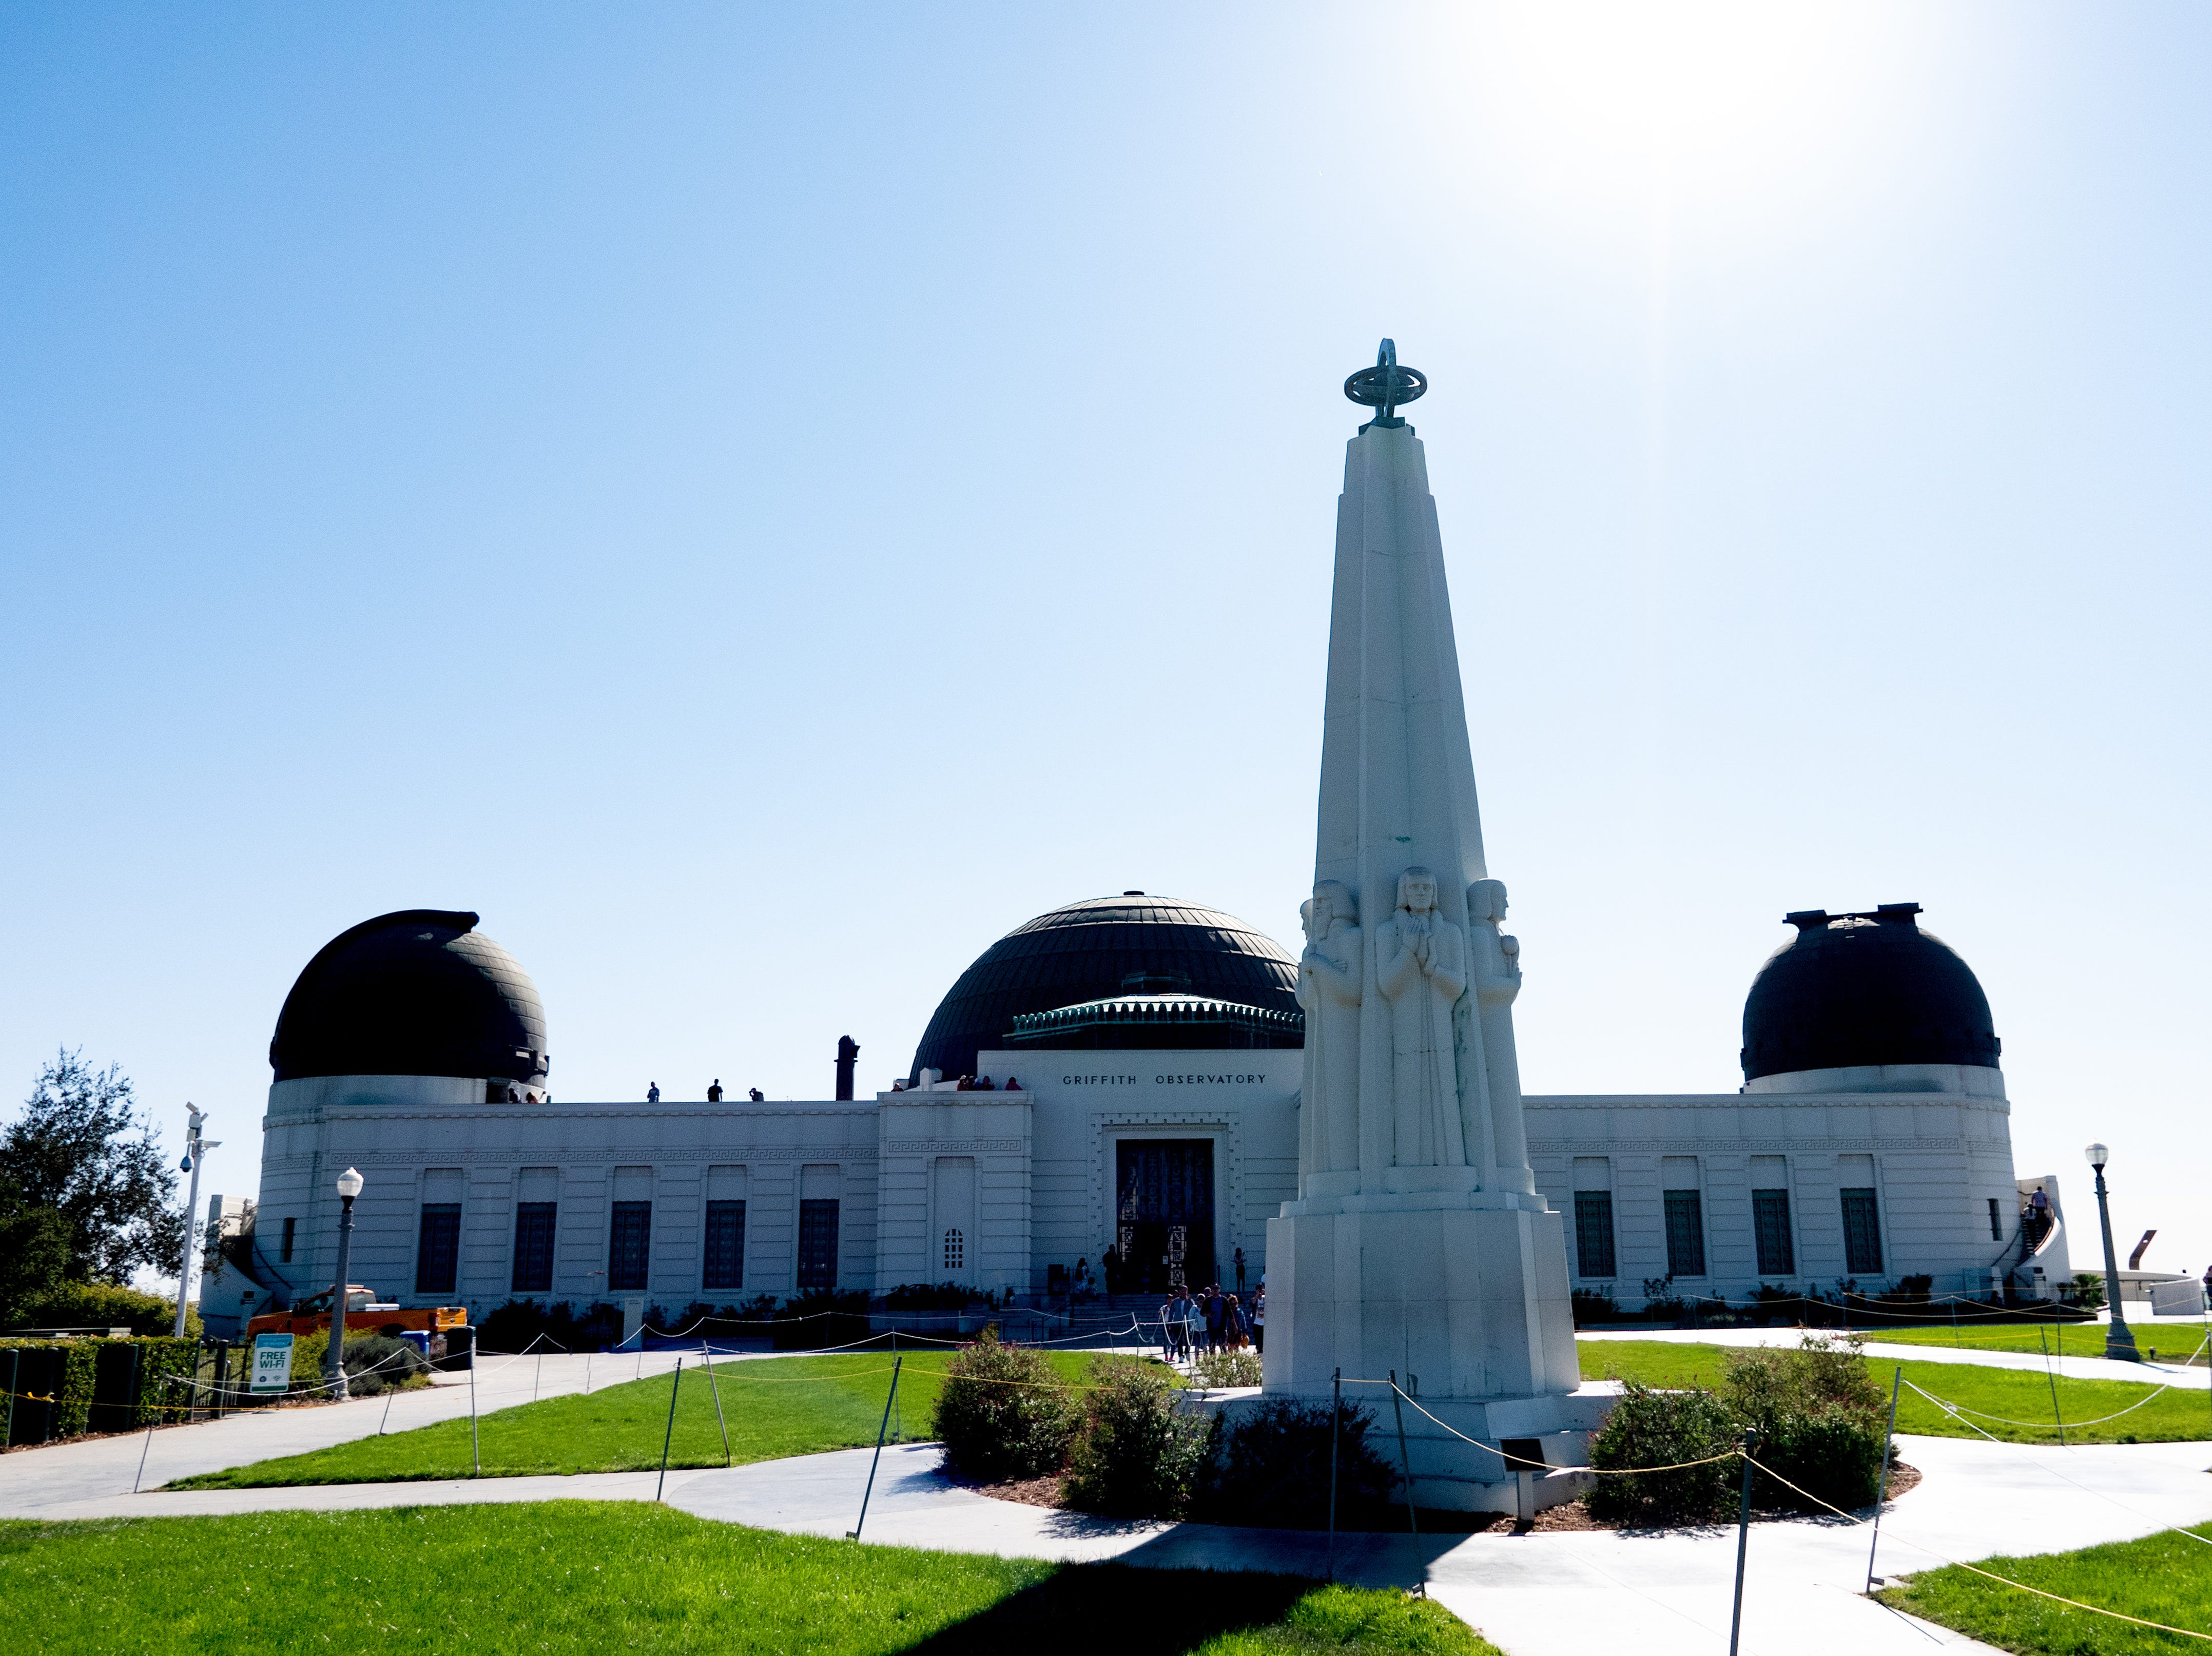 The Griffith Observatory by day. According to Discover Los Angeles, the Observatory is the no. 1 tourist attraction in Los Angeles